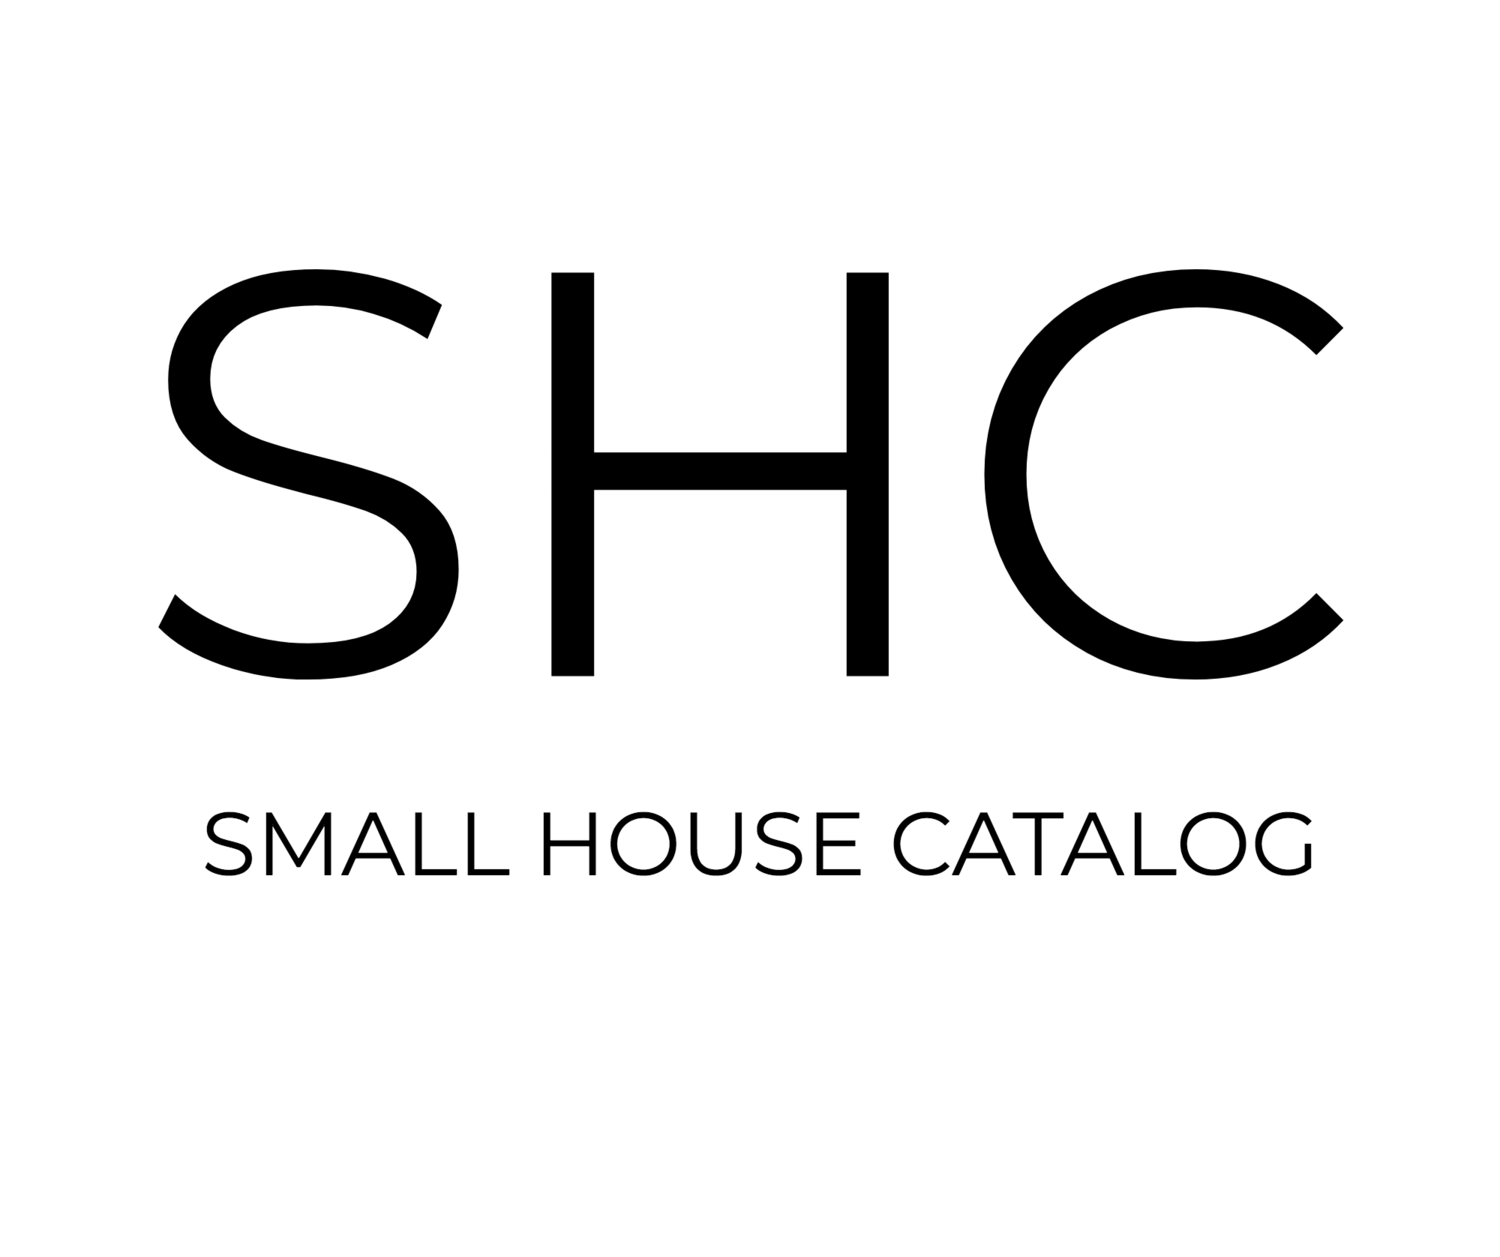 THE small HOUSE CATALOG